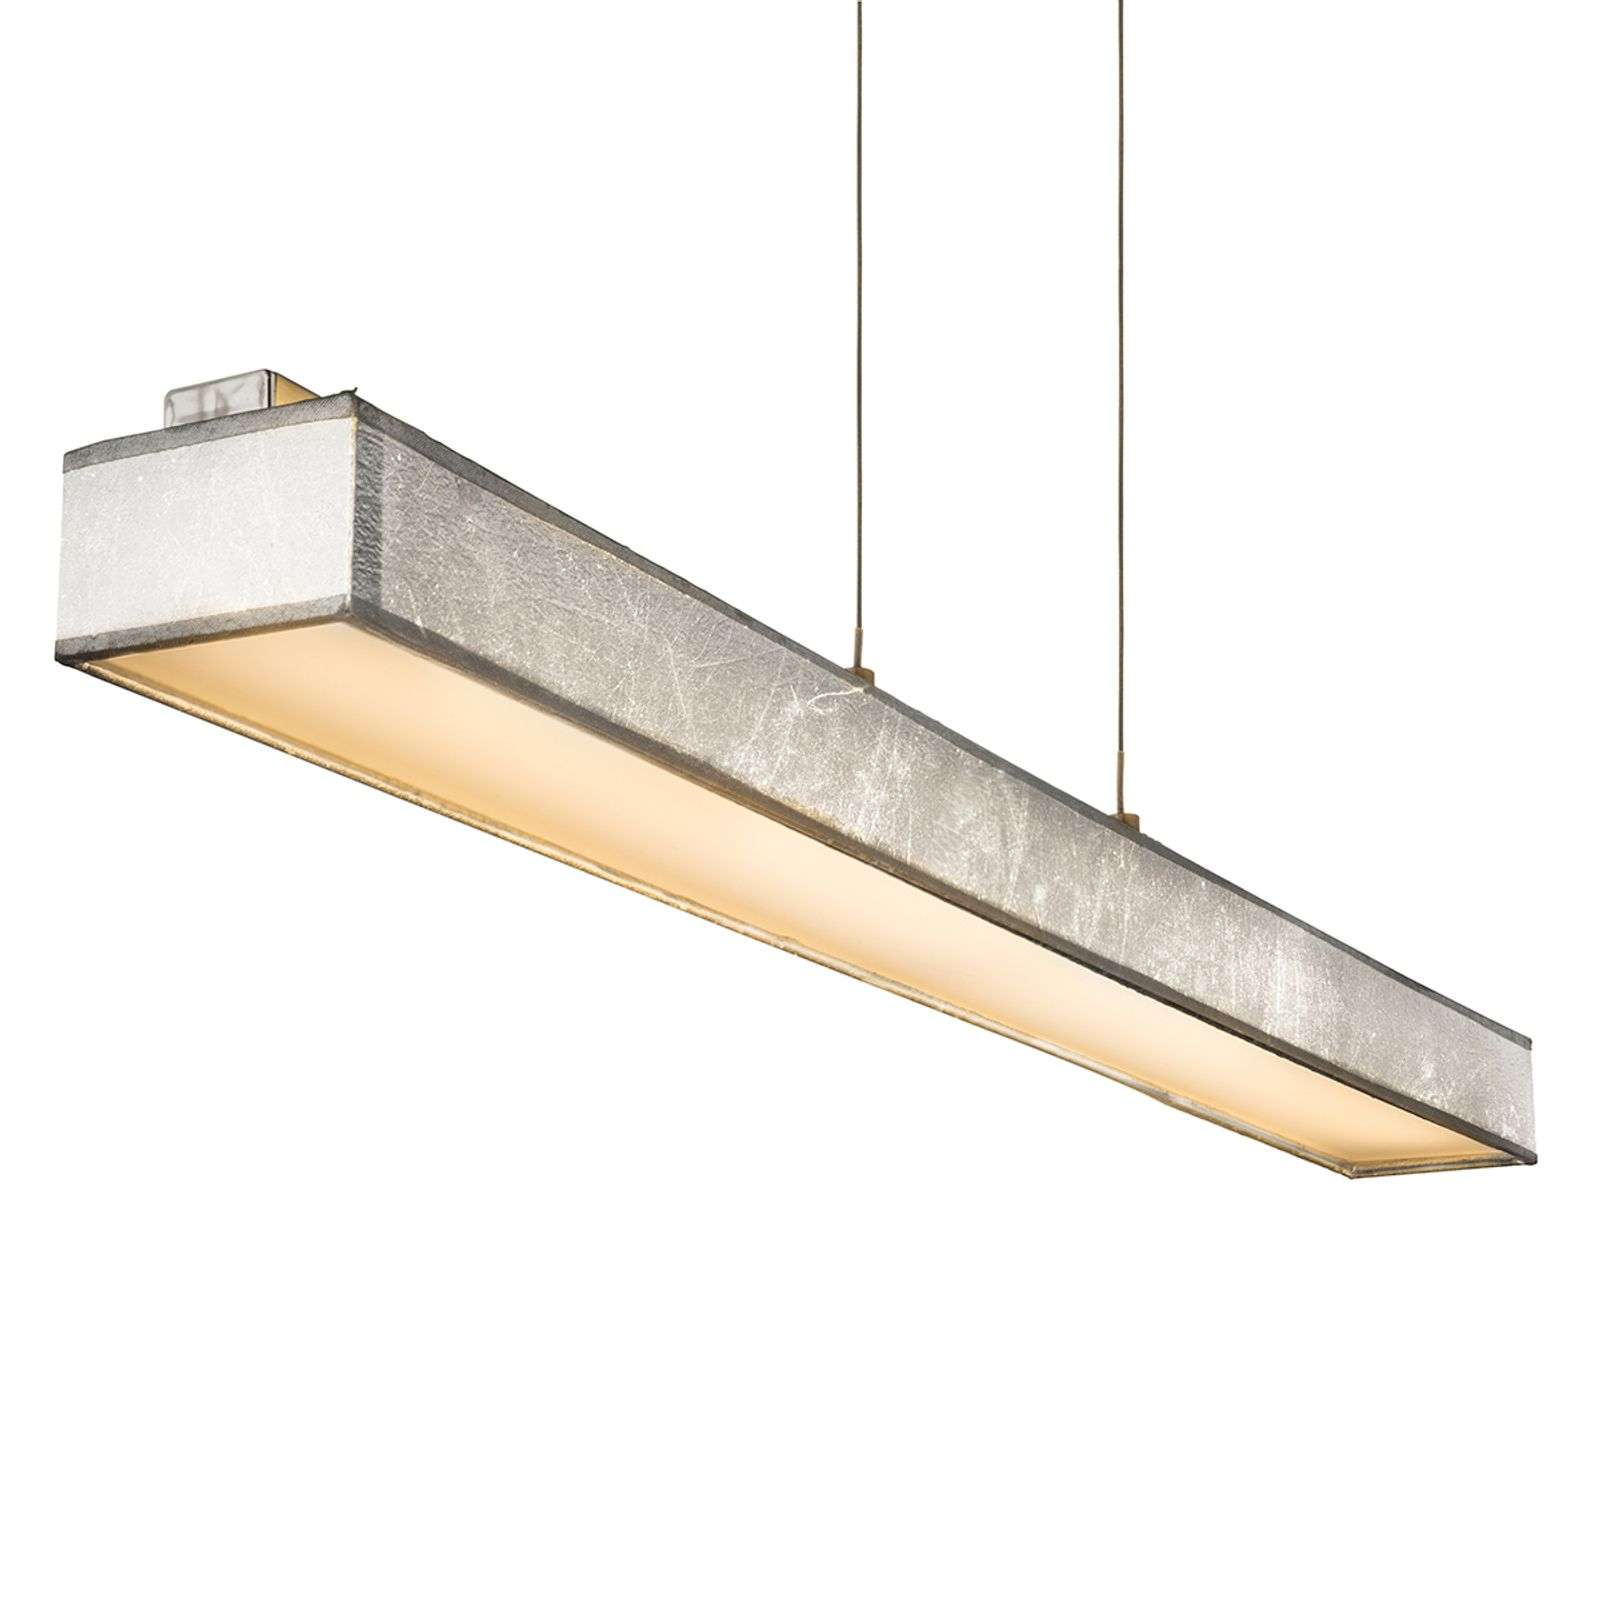 Suspension LED Ragna, au design innovant